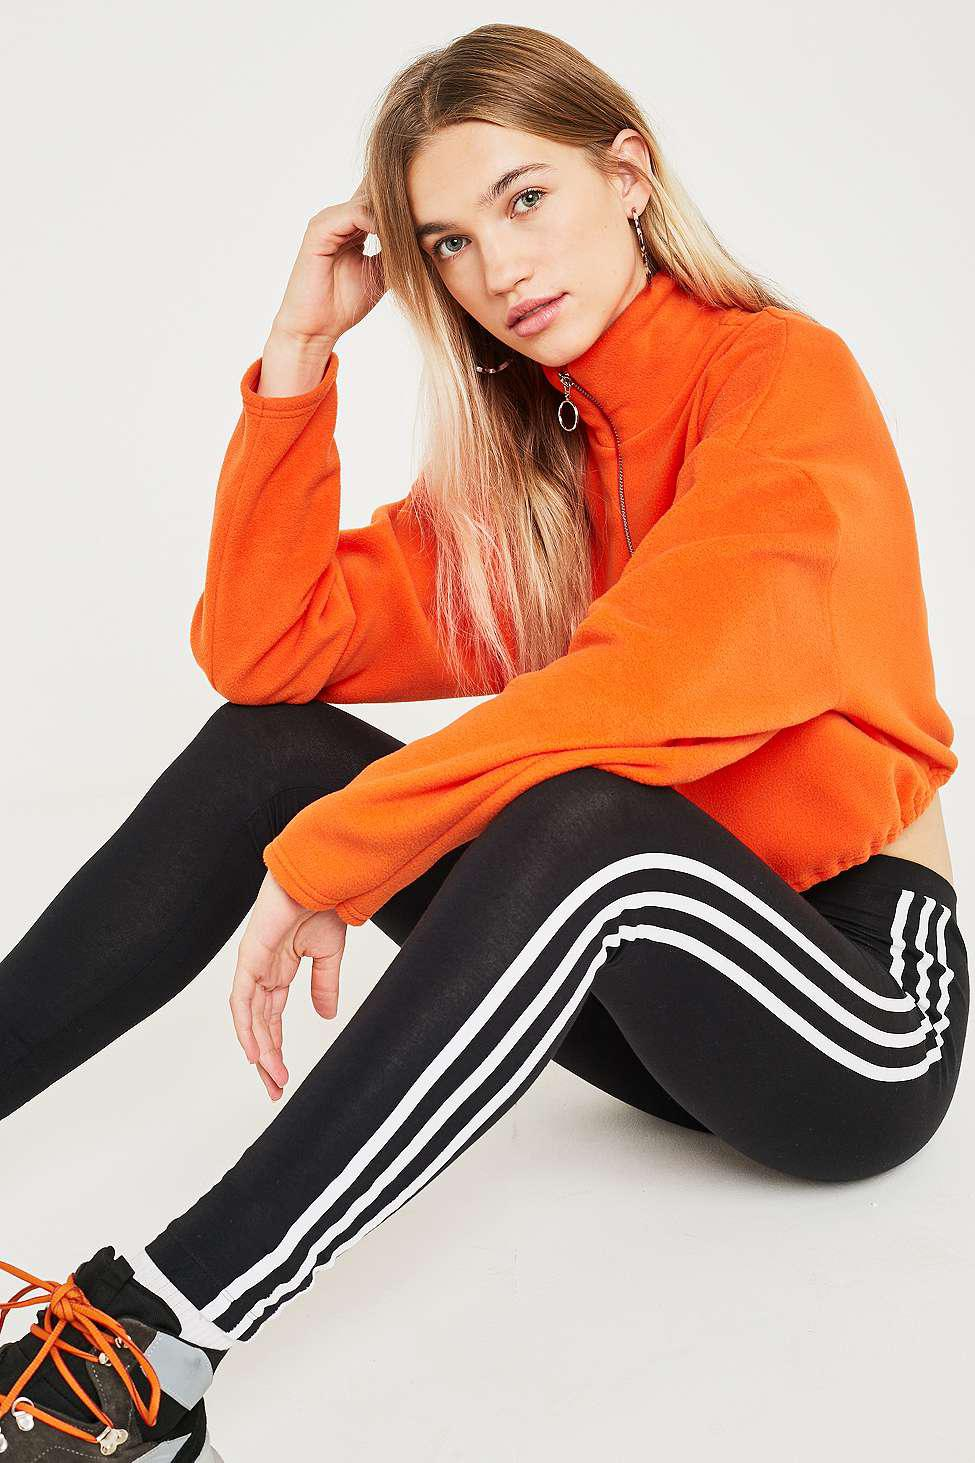 91c4ac734 adidas Originals. Women s Black 3-stripe Leggings. £28 From Urban Outfitters